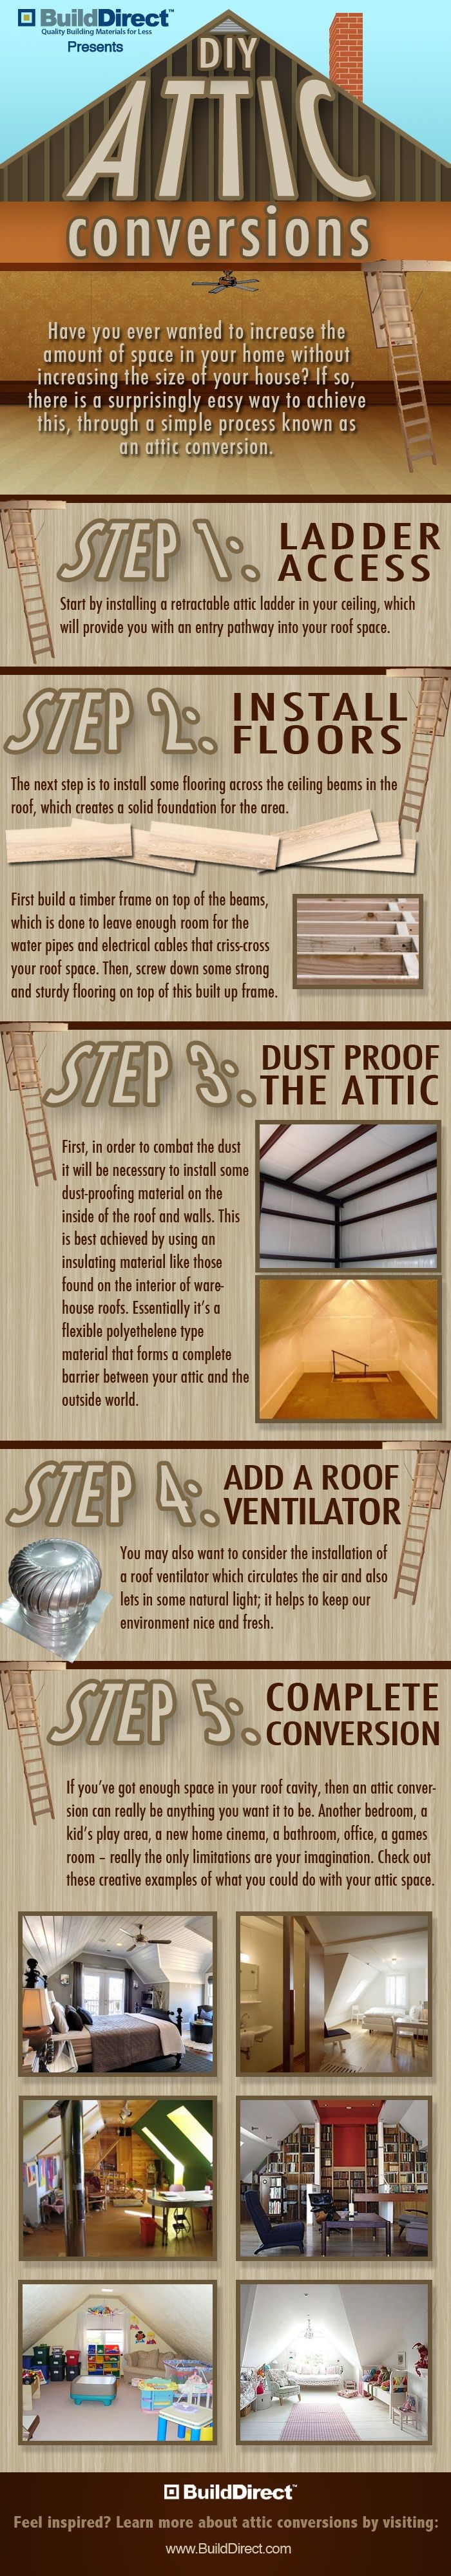 Attic Lyn Hallinan Imagine A Bedroom A Sewing Room Above Us If You Wanted To Convert Your Attic Into A Living Space How The Heck Would You Do It